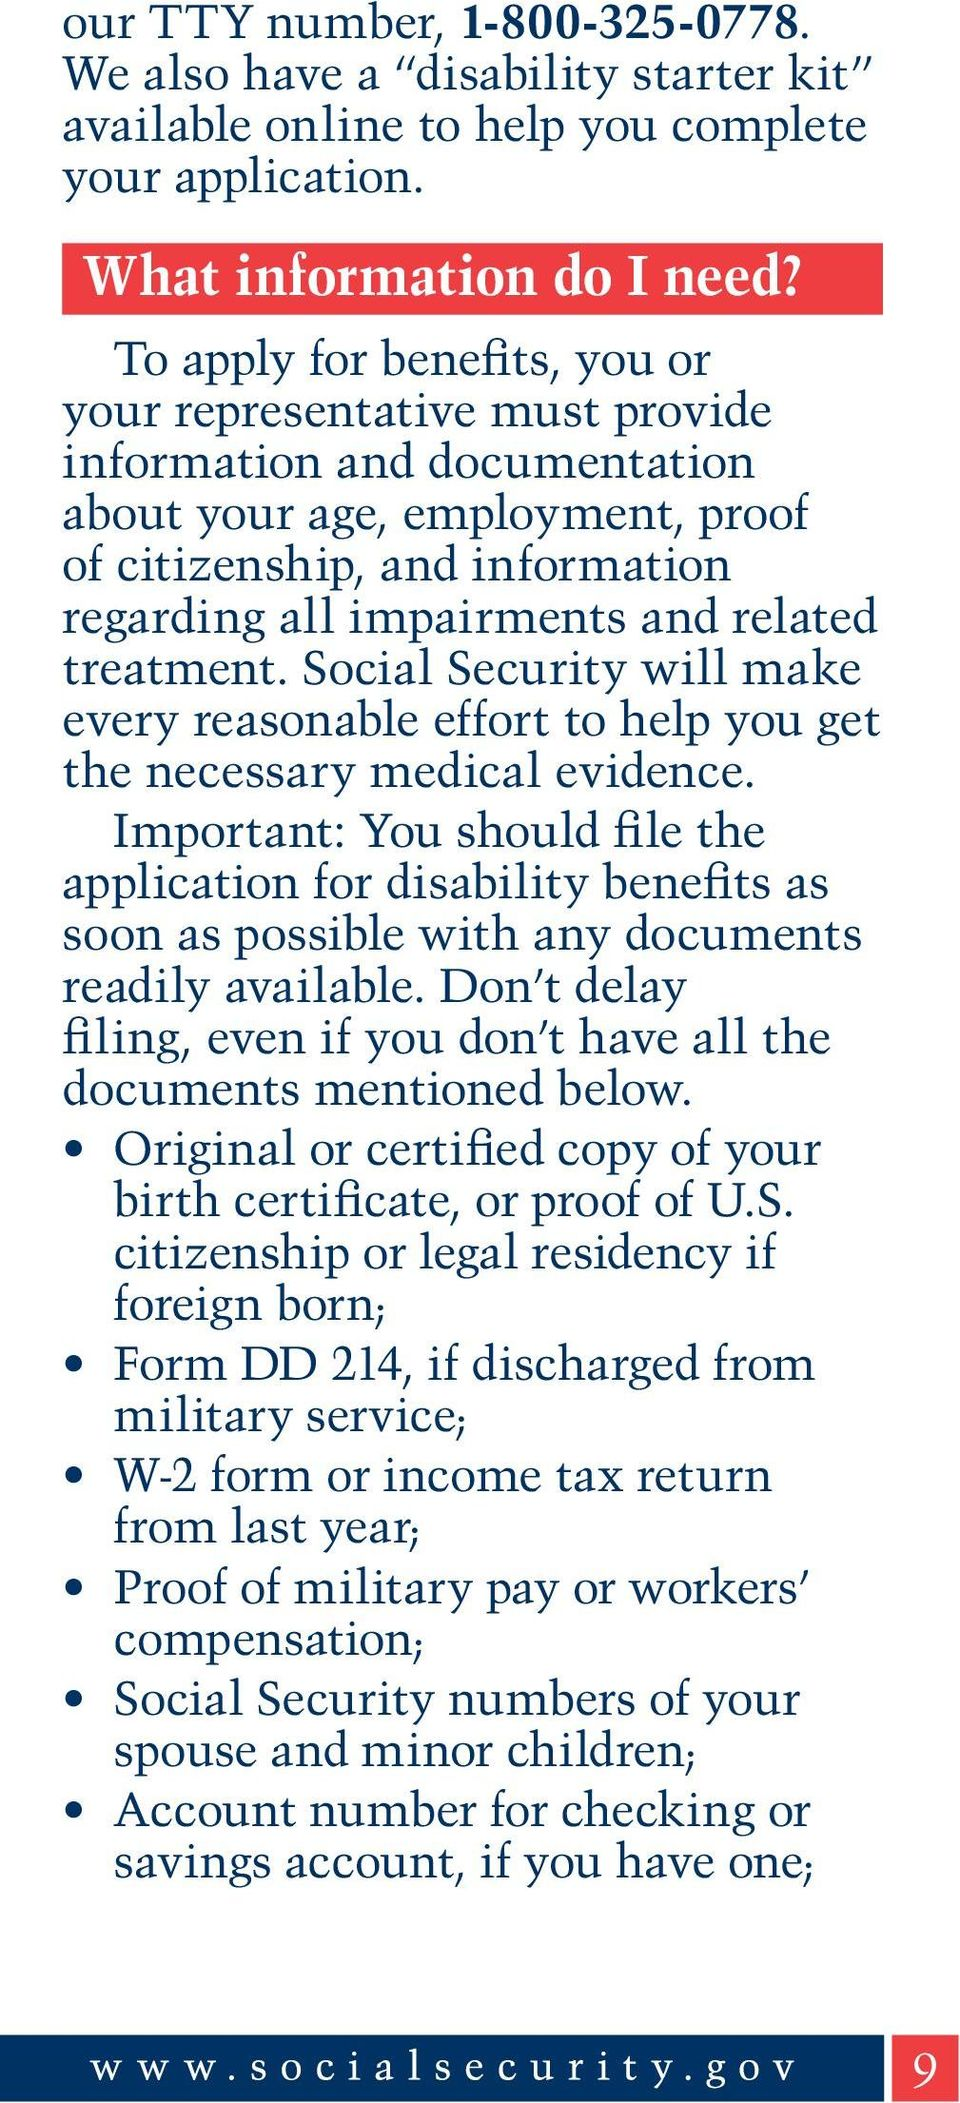 treatment. Social Security will make every reasonable effort to help you get the necessary medical evidence.